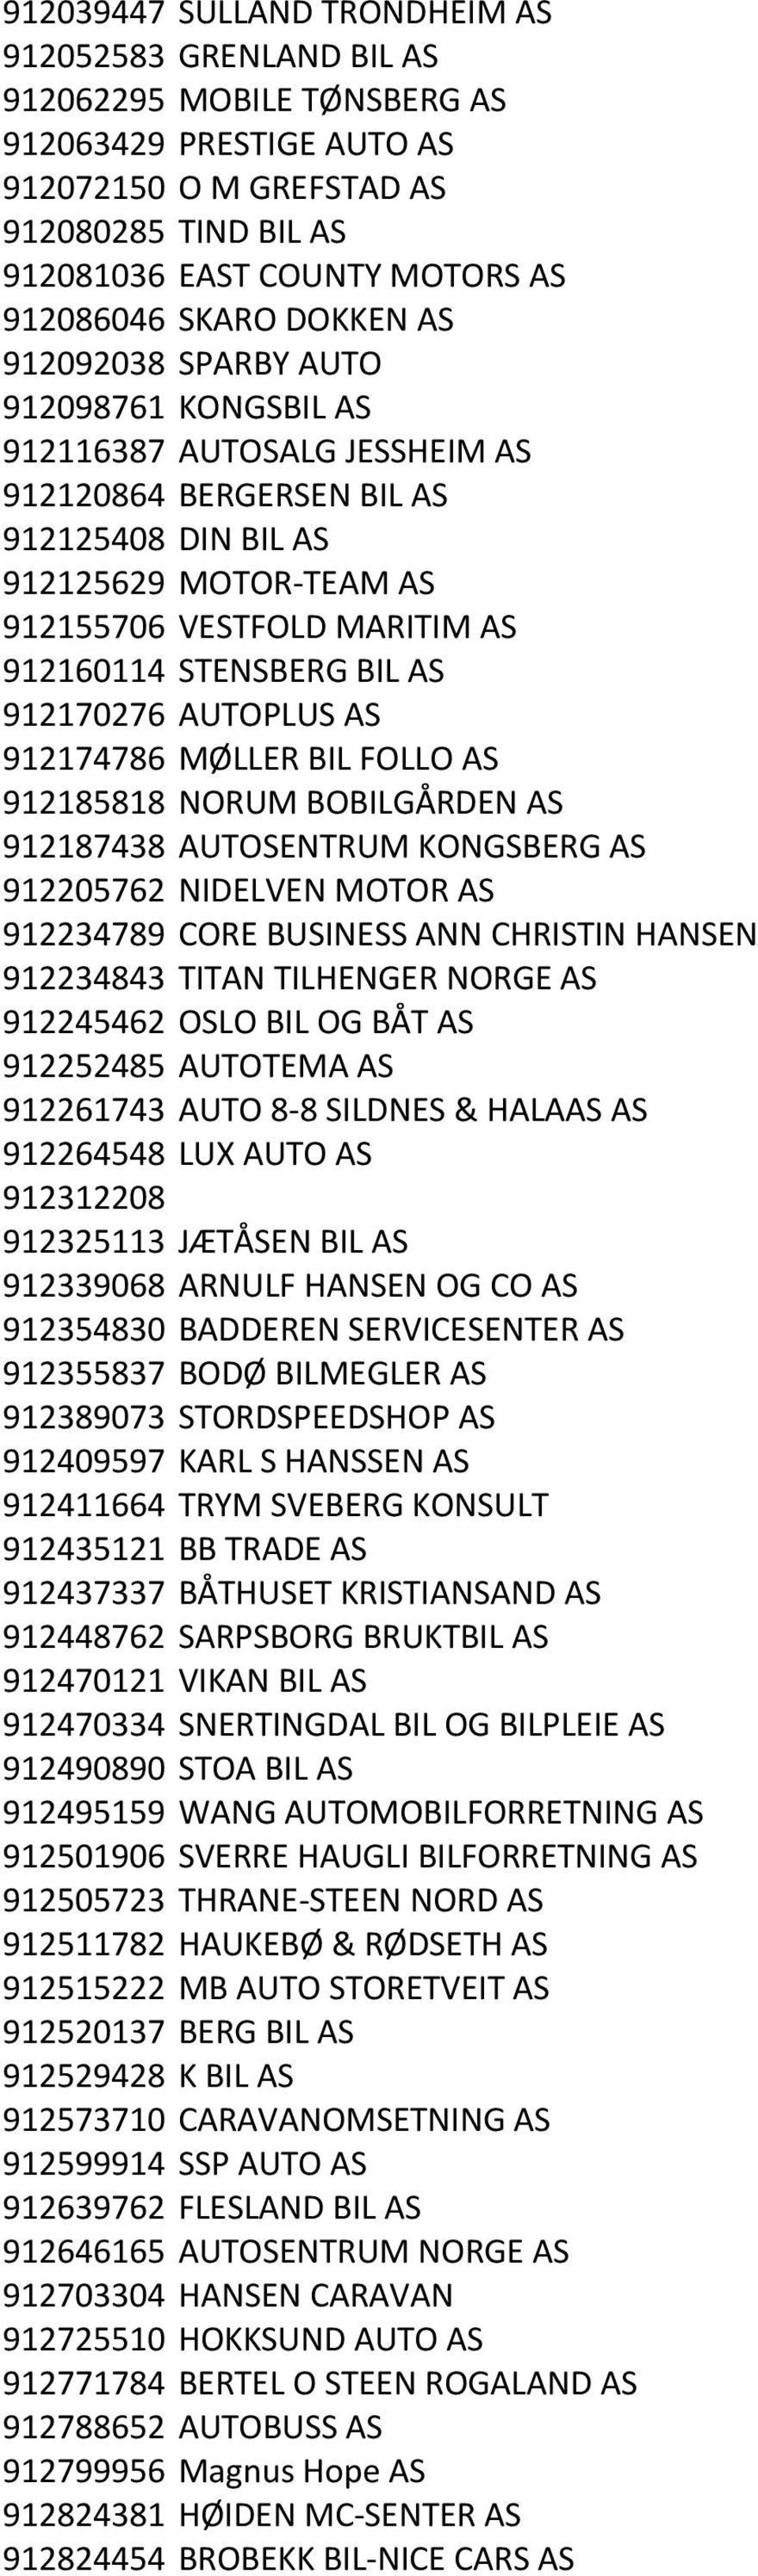 AS 912160114 STENSBERG BIL AS 912170276 AUTOPLUS AS 912174786 MØLLER BIL FOLLO AS 912185818 NORUM BOBILGÅRDEN AS 912187438 AUTOSENTRUM KONGSBERG AS 912205762 NIDELVEN MOTOR AS 912234789 CORE BUSINESS